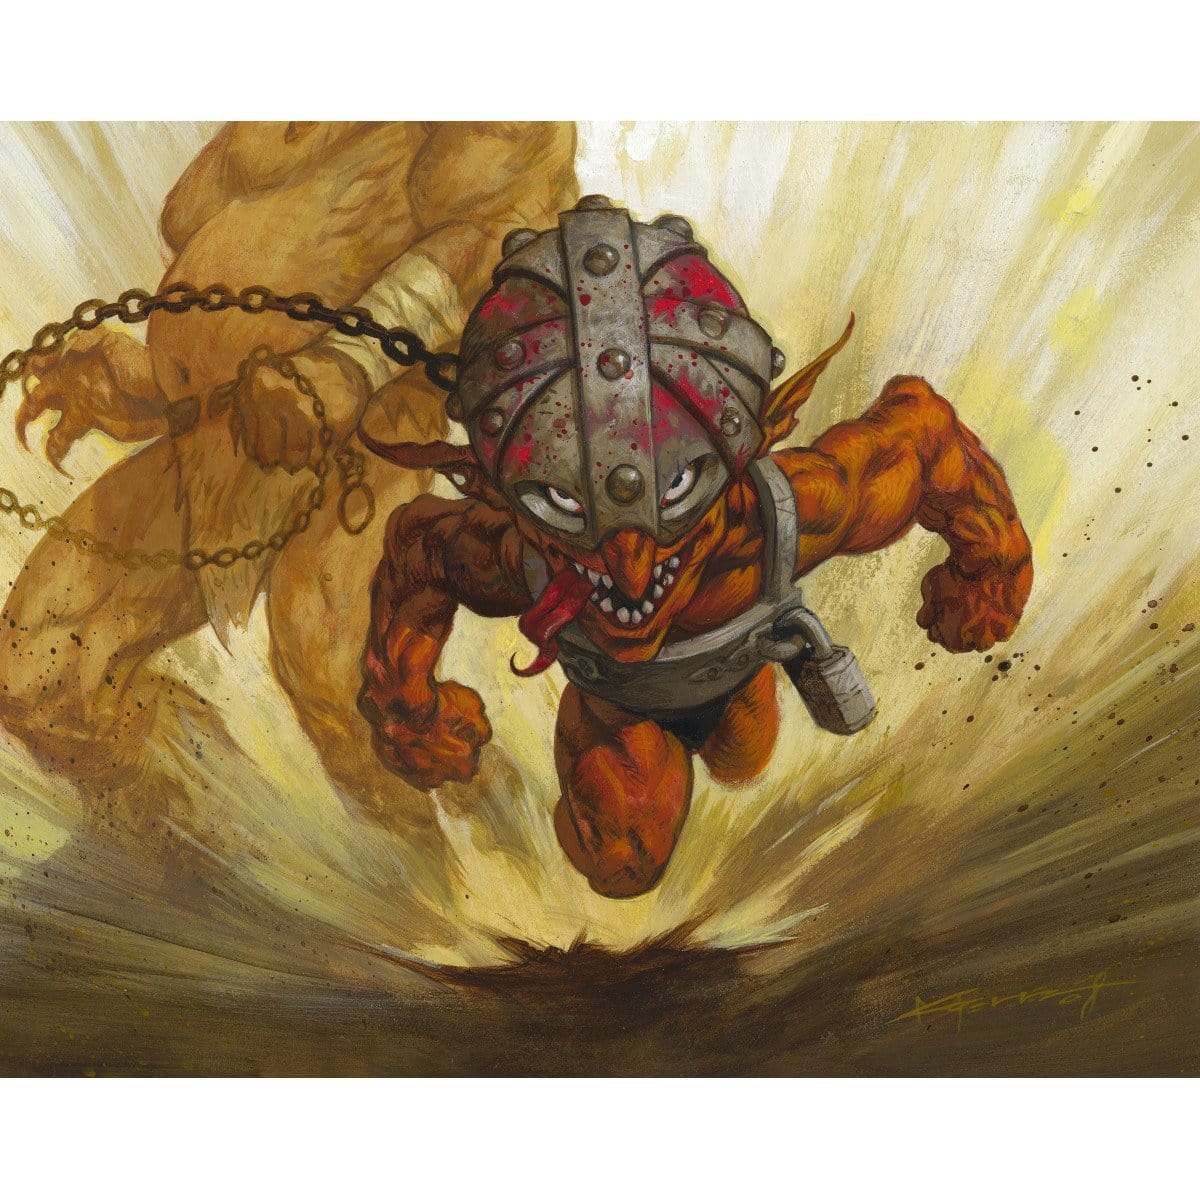 Goblin Lackey Print - Print - Original Magic Art - Accessories for Magic the Gathering and other card games